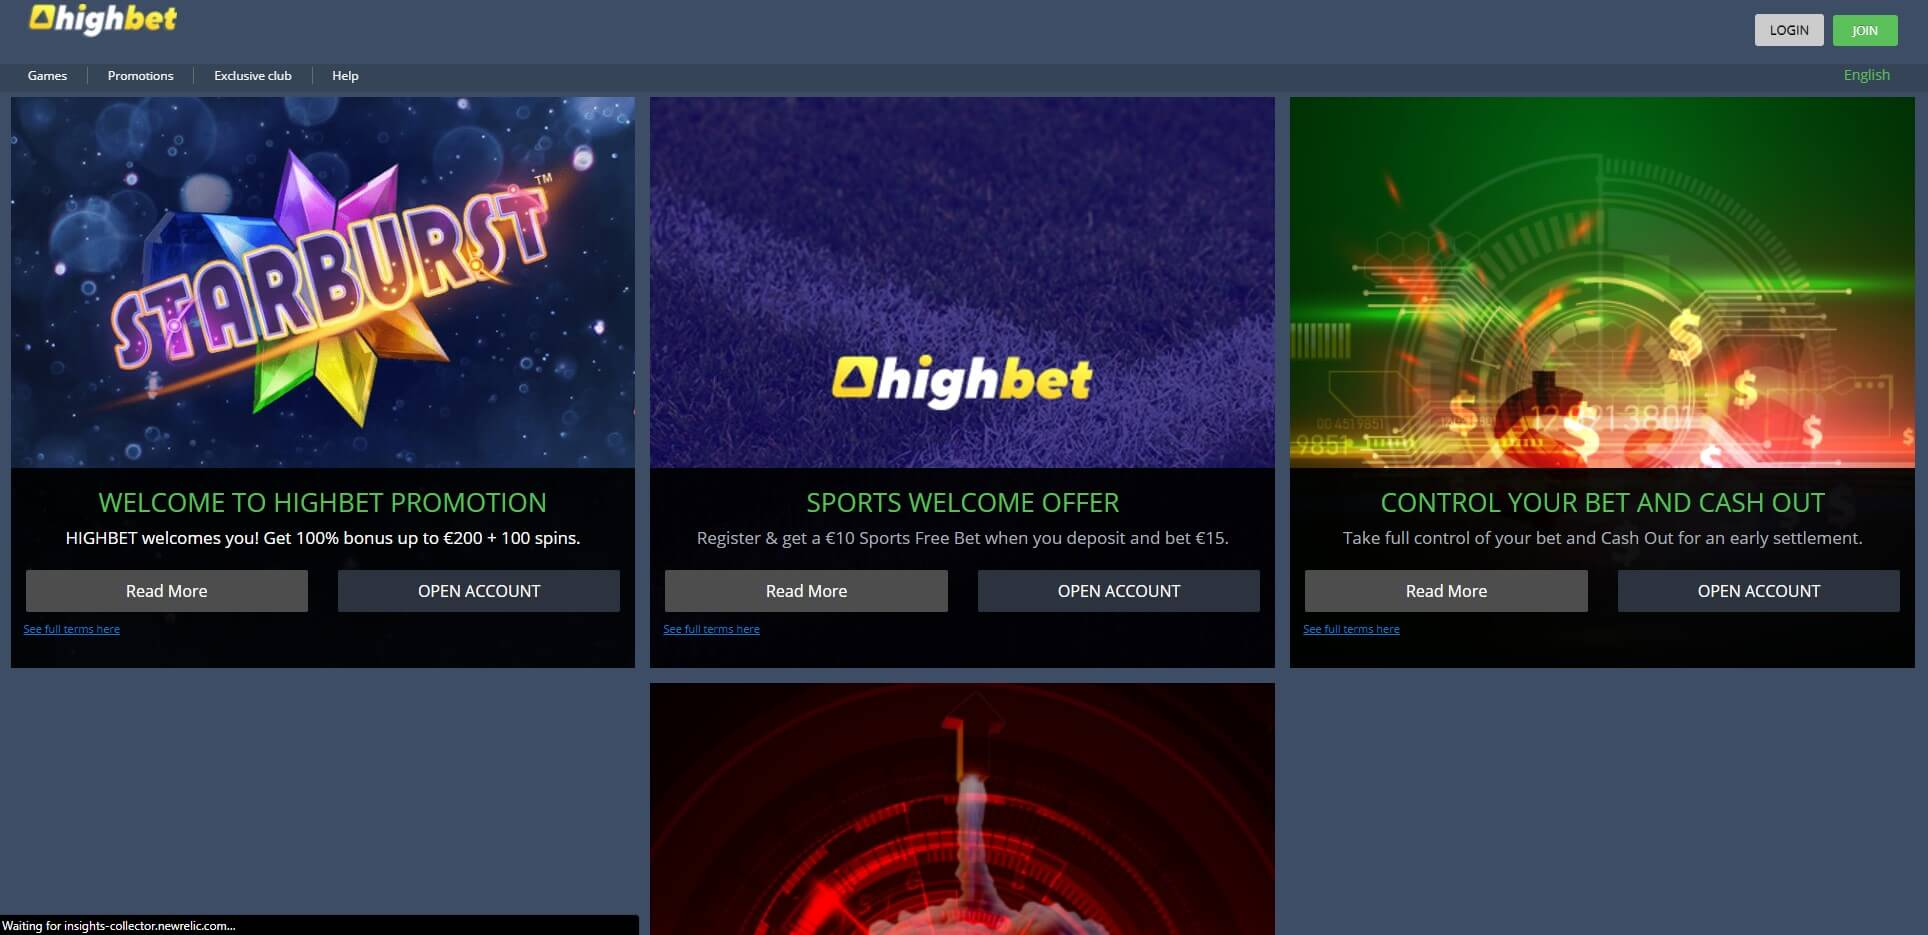 Promotions at HighBet Casino